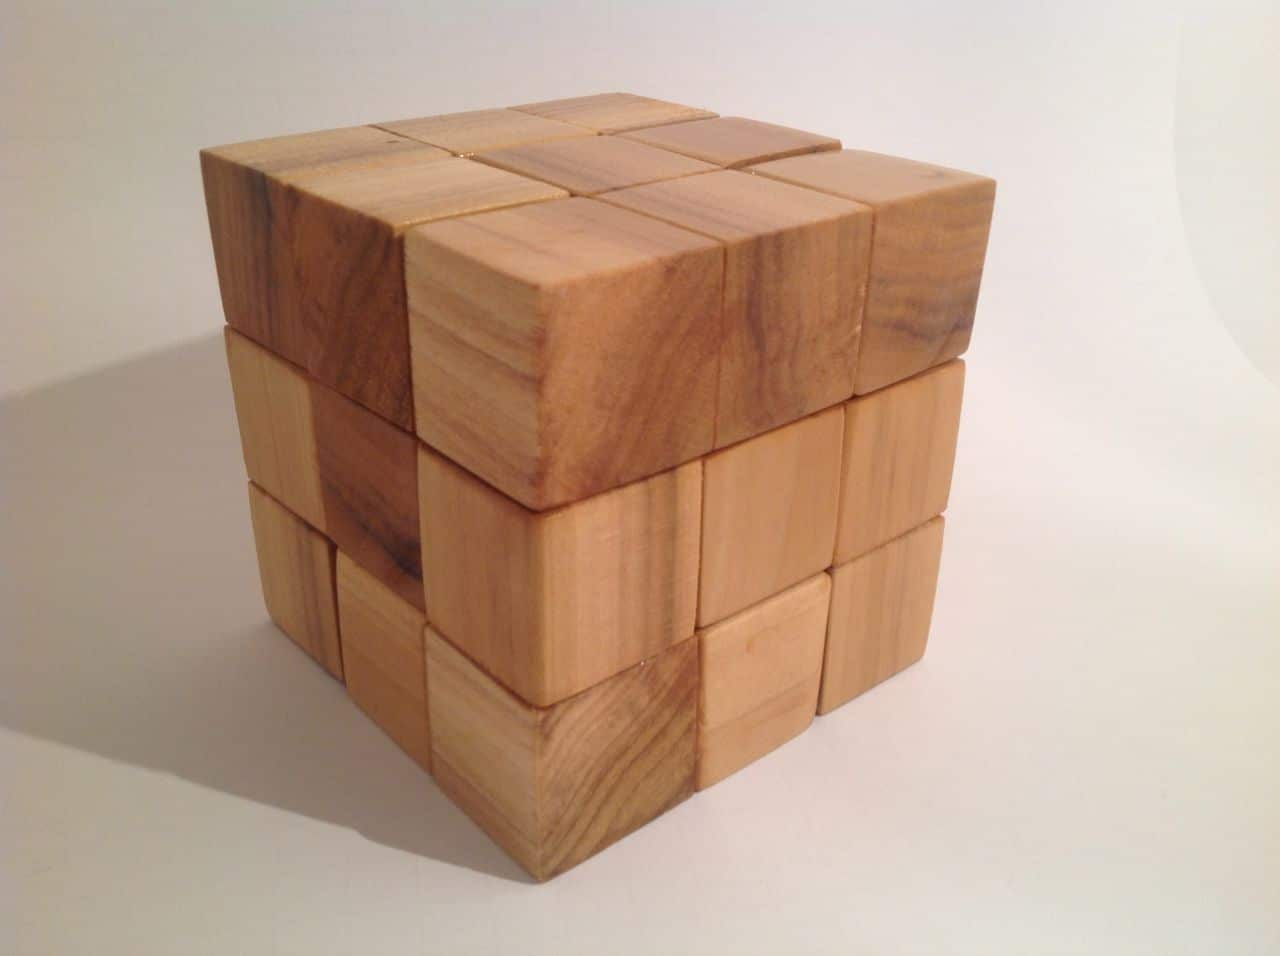 Woodguide: Mystery cube in a cube puzzle woodworking project